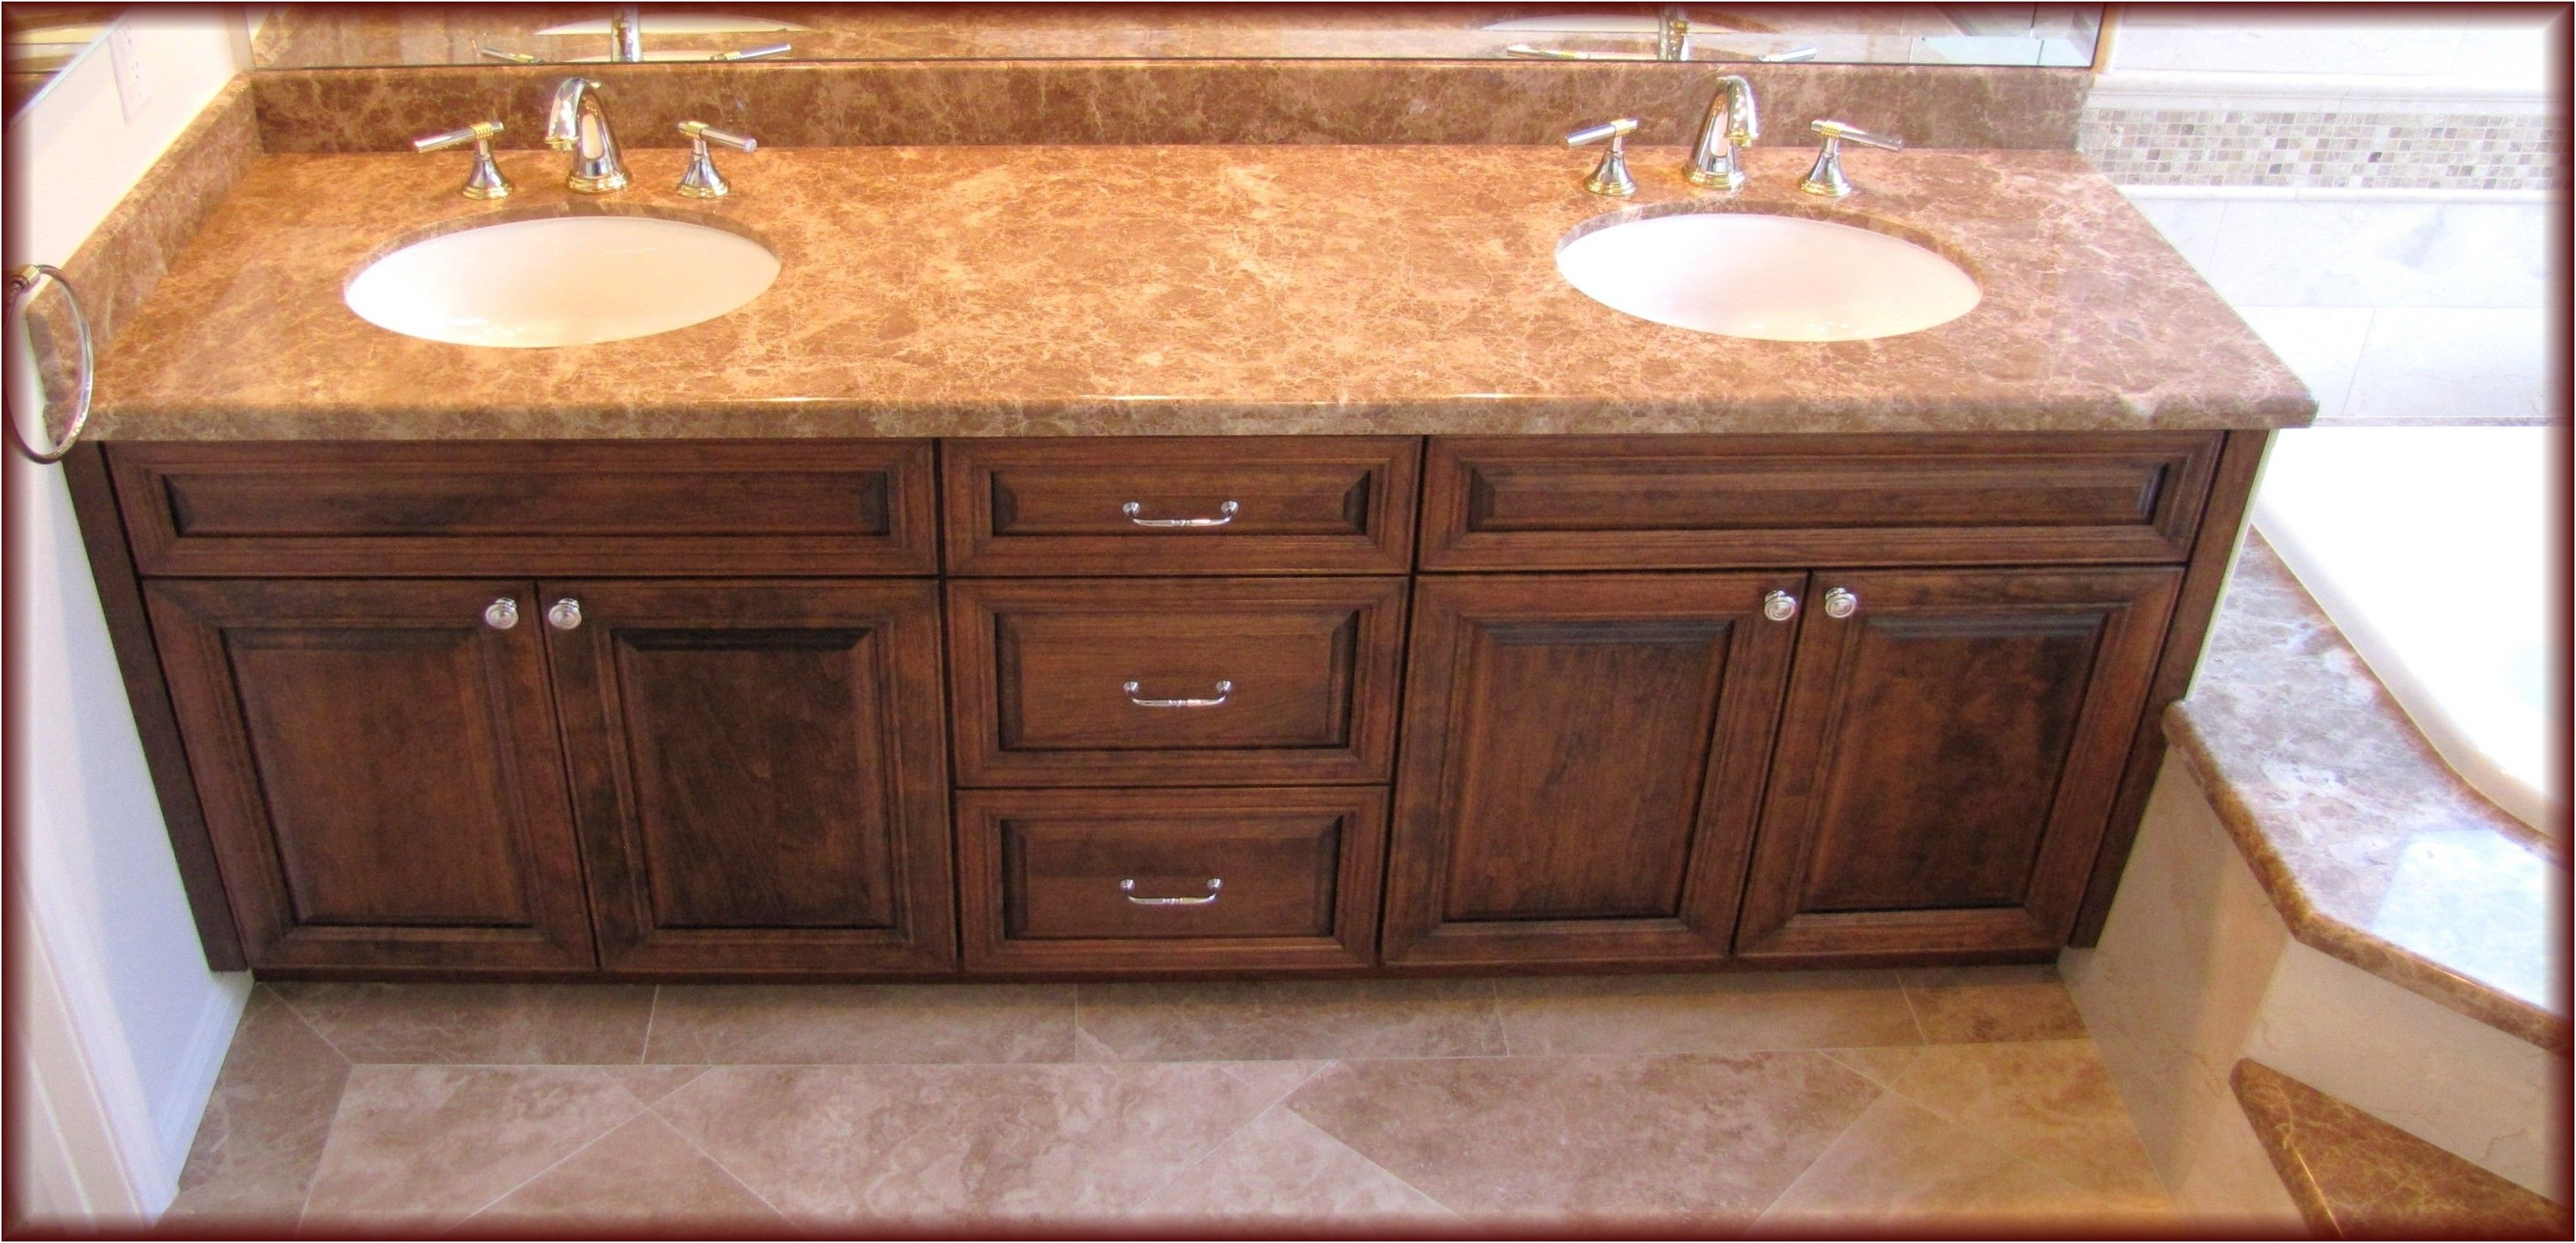 bathroom cabinets portland oregon from Bathroom Cabinets ...